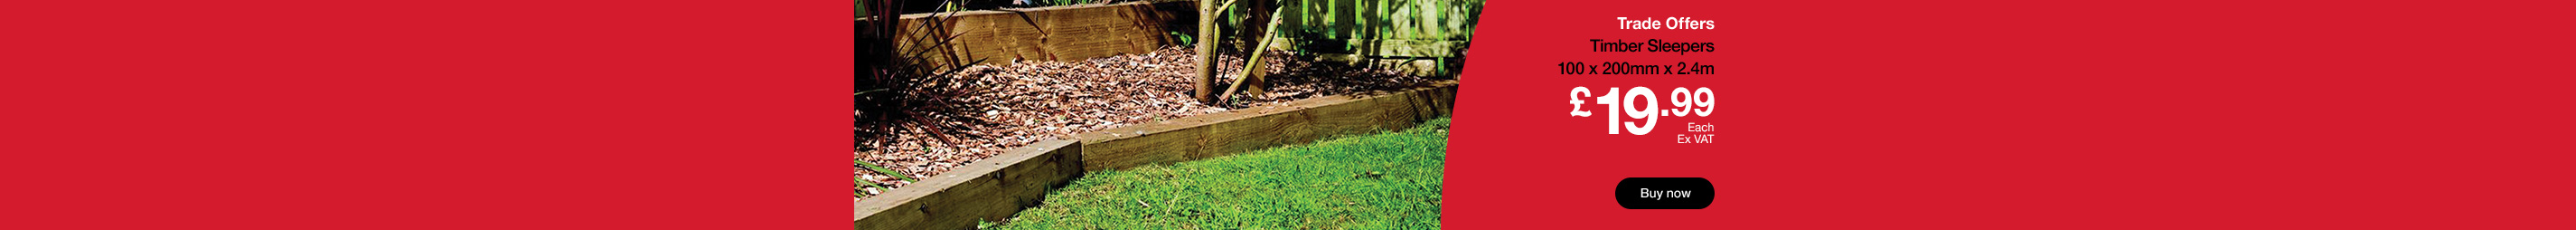 Timber Sleepers from £19.99